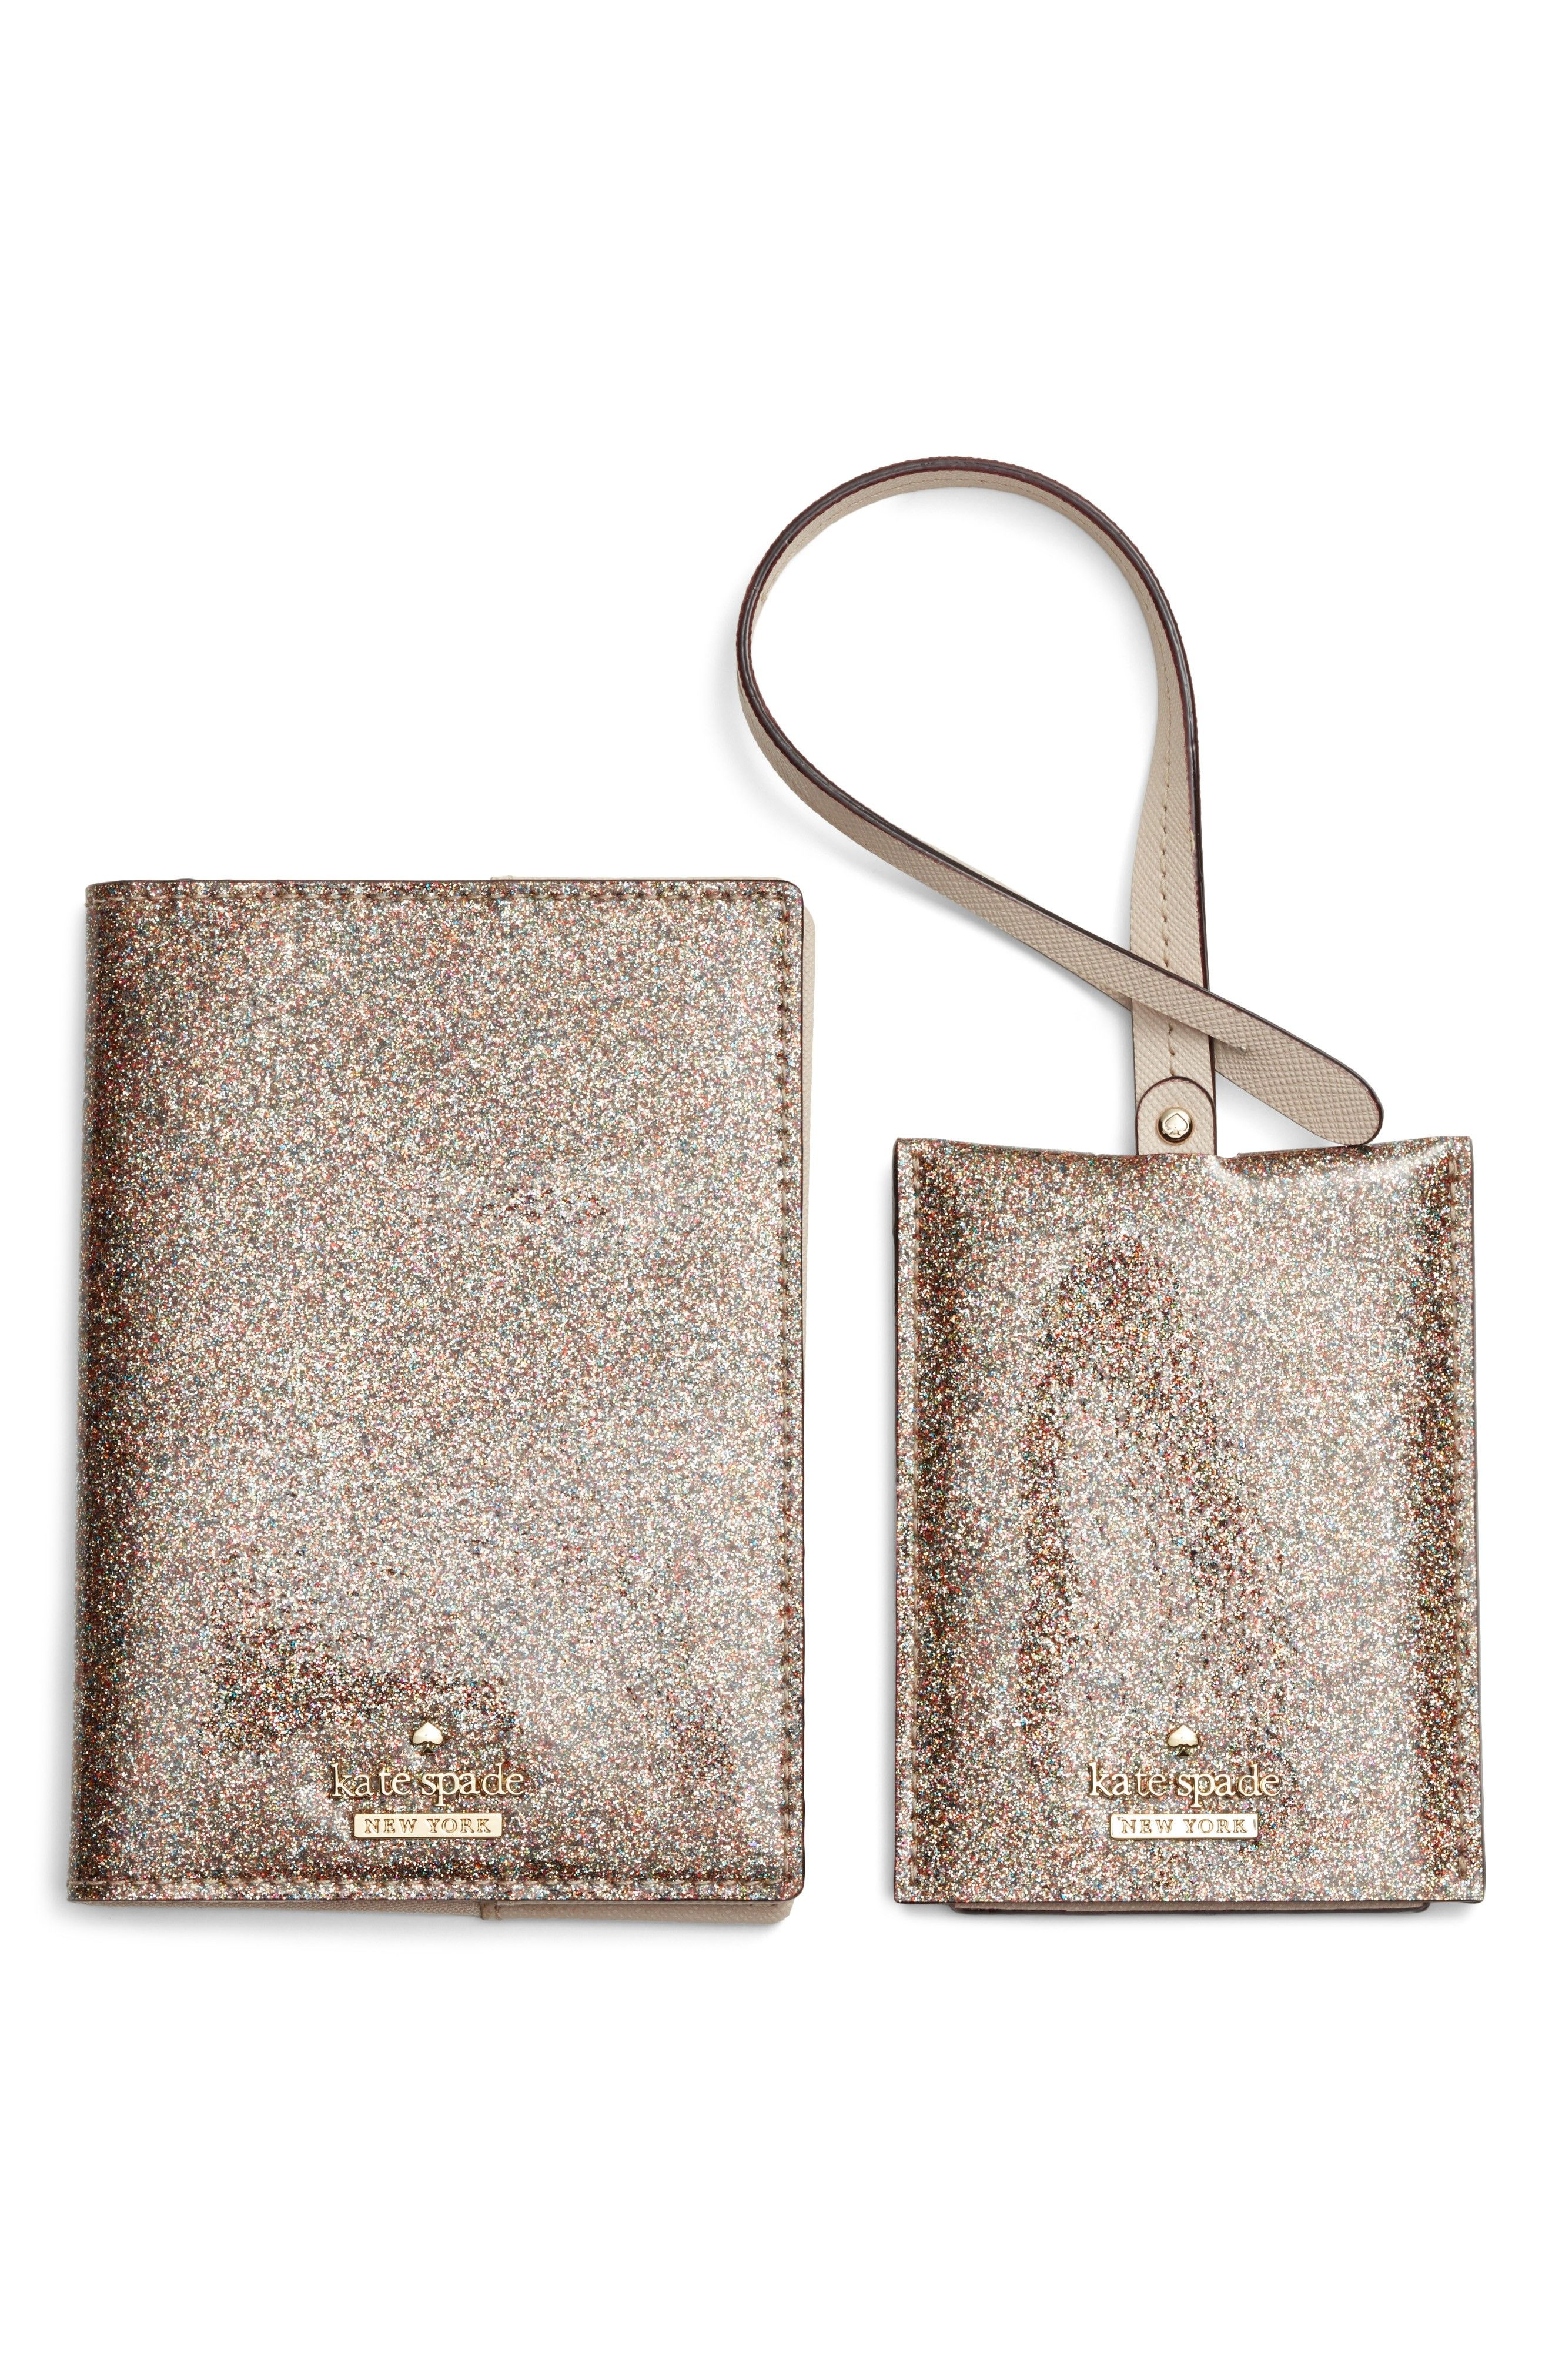 a4408d24466e kate spade leather passport case & luggage tag set   Happily Ever ...